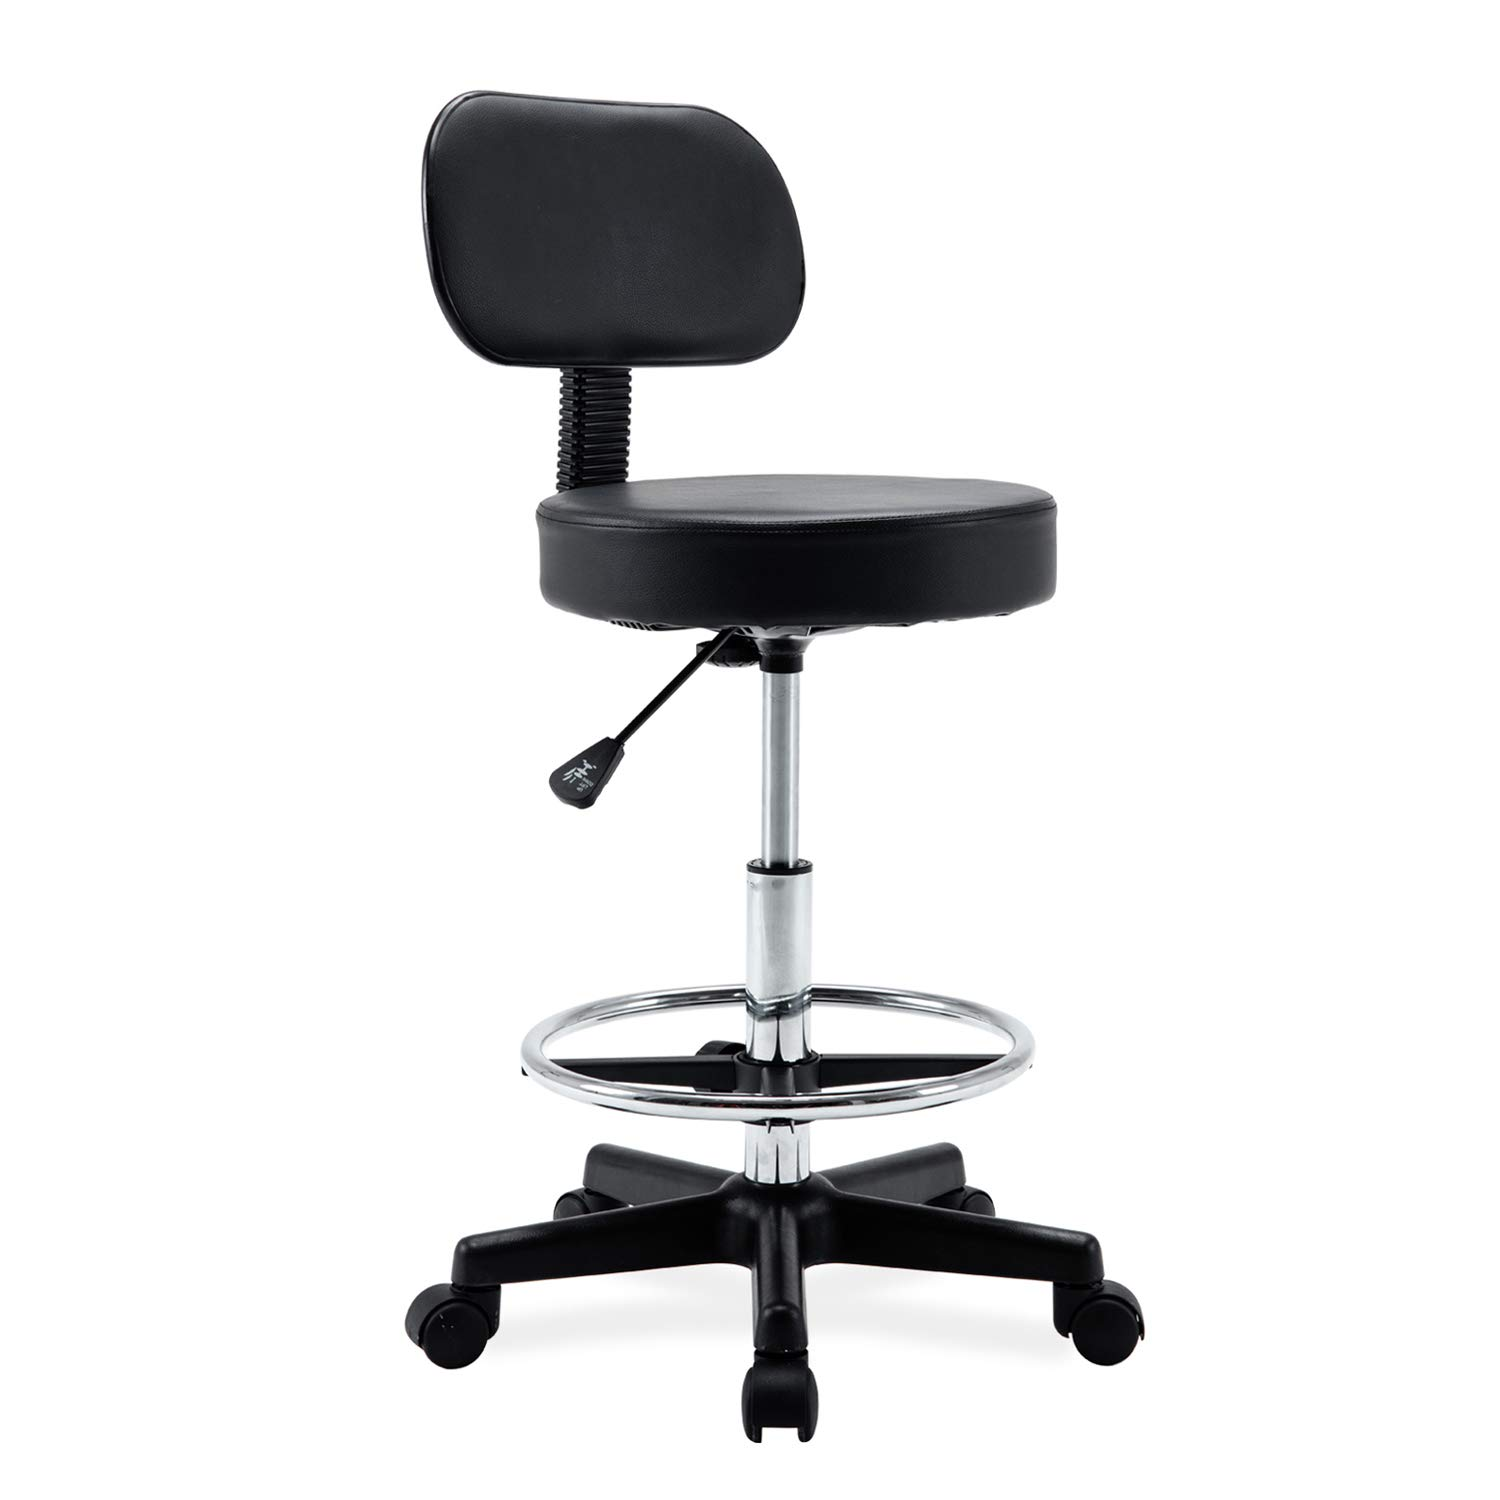 Ergonomic Drafting Stool- Adjustable Rolling Office Chair Work Stool with Back and Wheels for Home Office Workplace Studio Guitar Practice, seat Height 19.7-27.5'' ... by Wahson